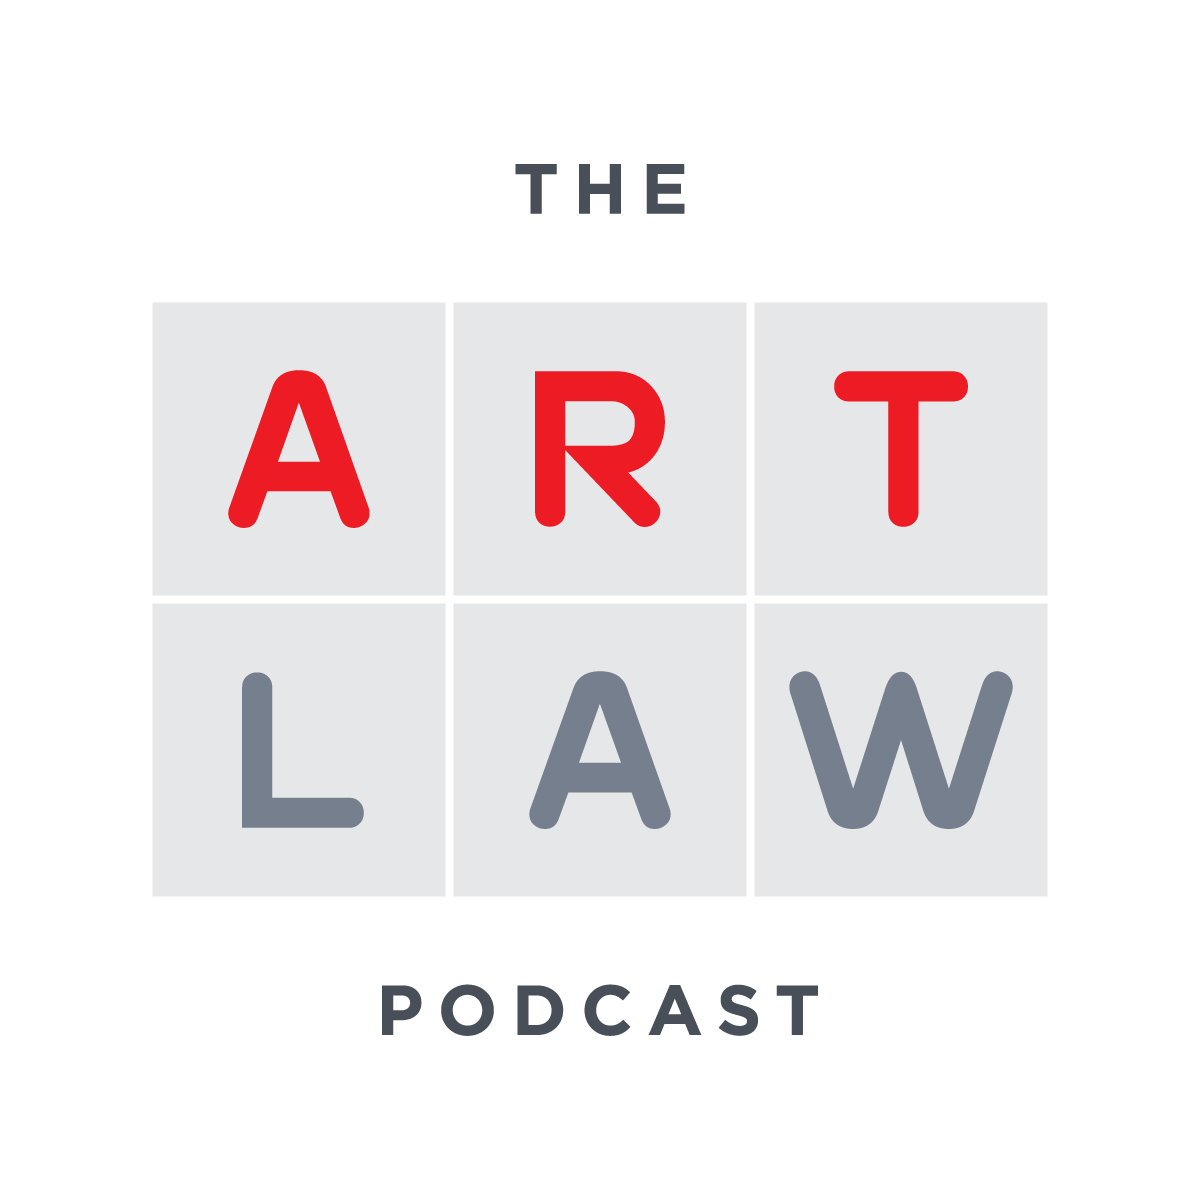 Art, Censorship and the First Amendment – The Art Law Podcast